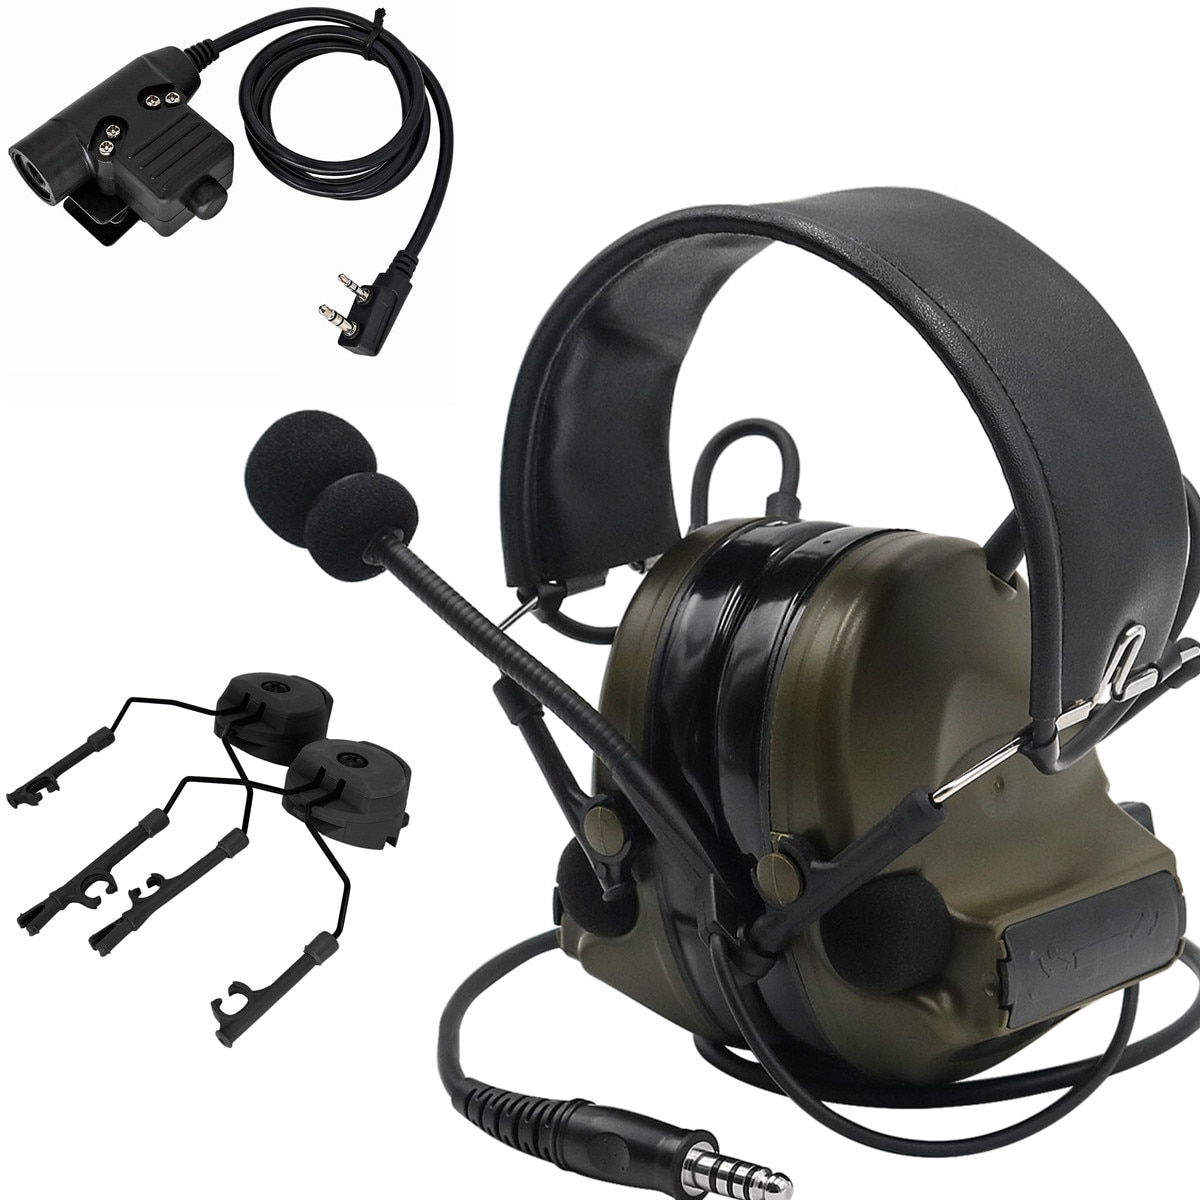 Tactical COMTAC II Noise Reduction Pickup Hunting Shooting Headset and Tactical U94 PTT and Tactical Helmet ARC Rail Adapter FG